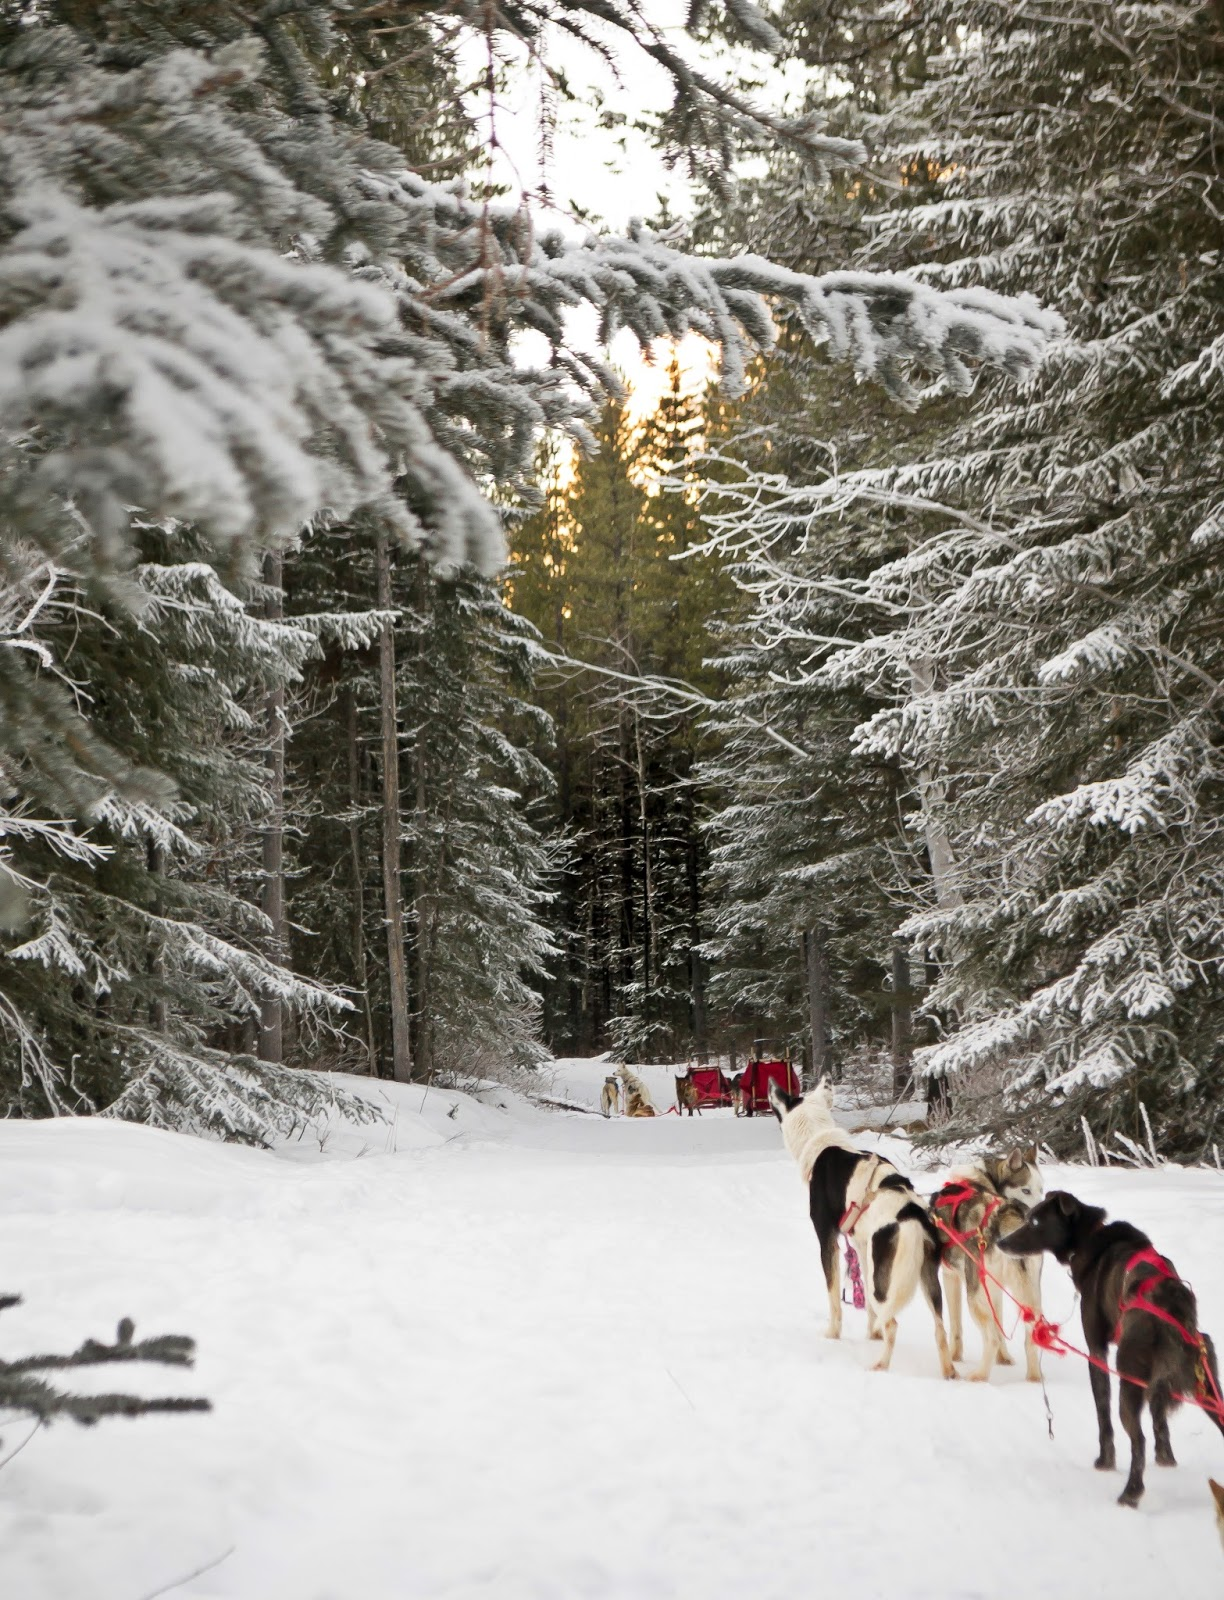 Dogsledding in Kananaskis near Calgary in winter